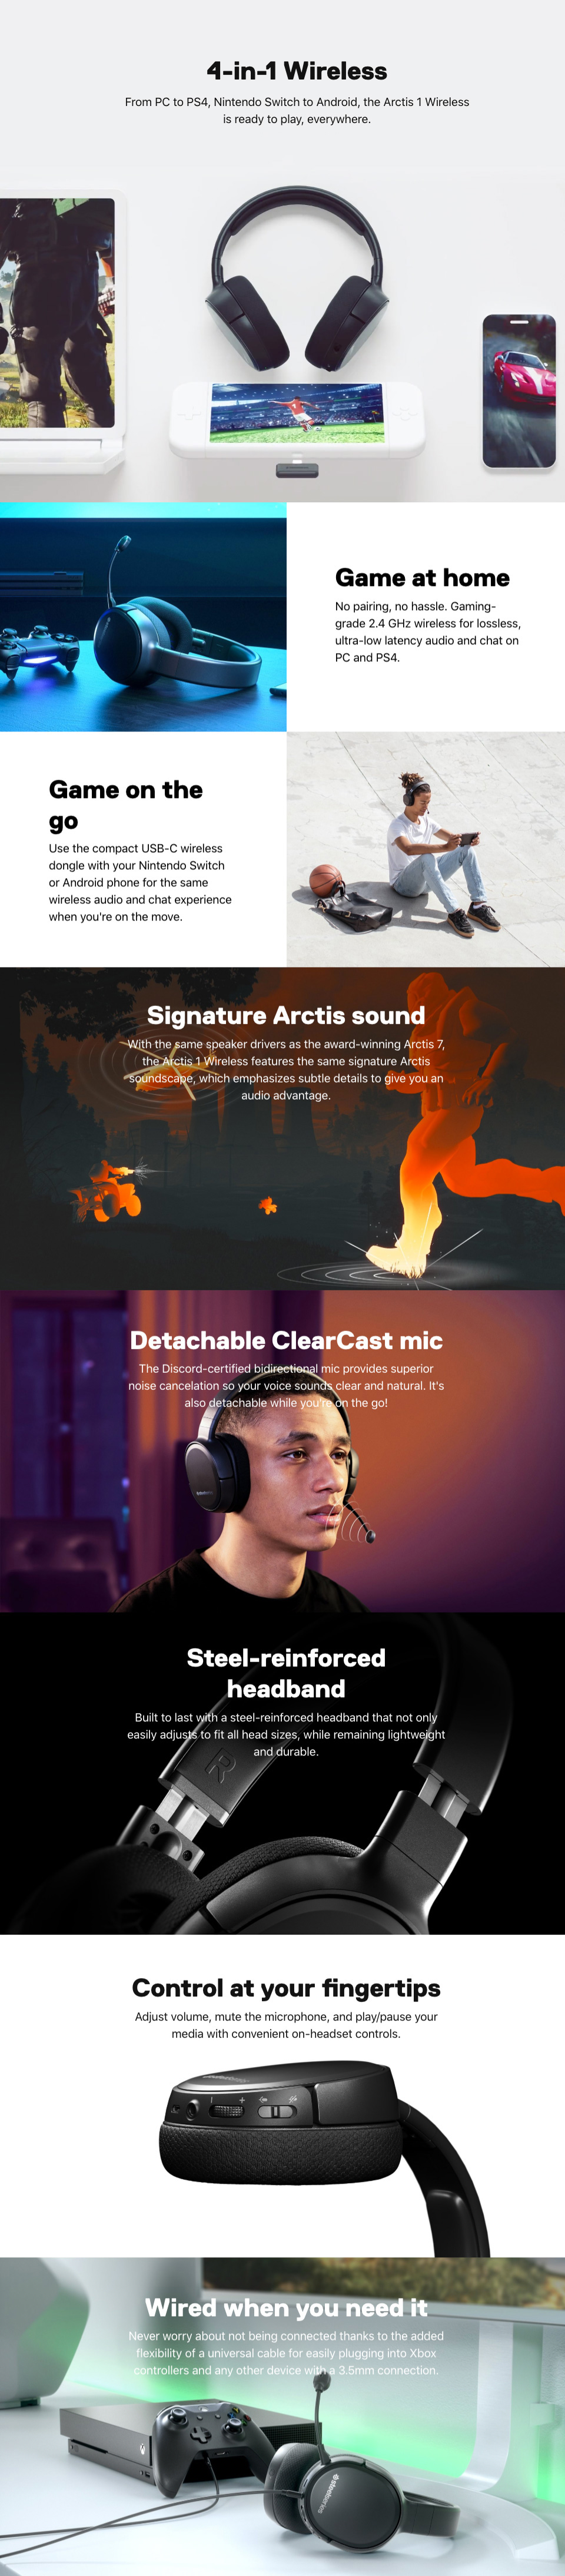 SteelSeries Arctis 1 Wireless Gaming Headset features